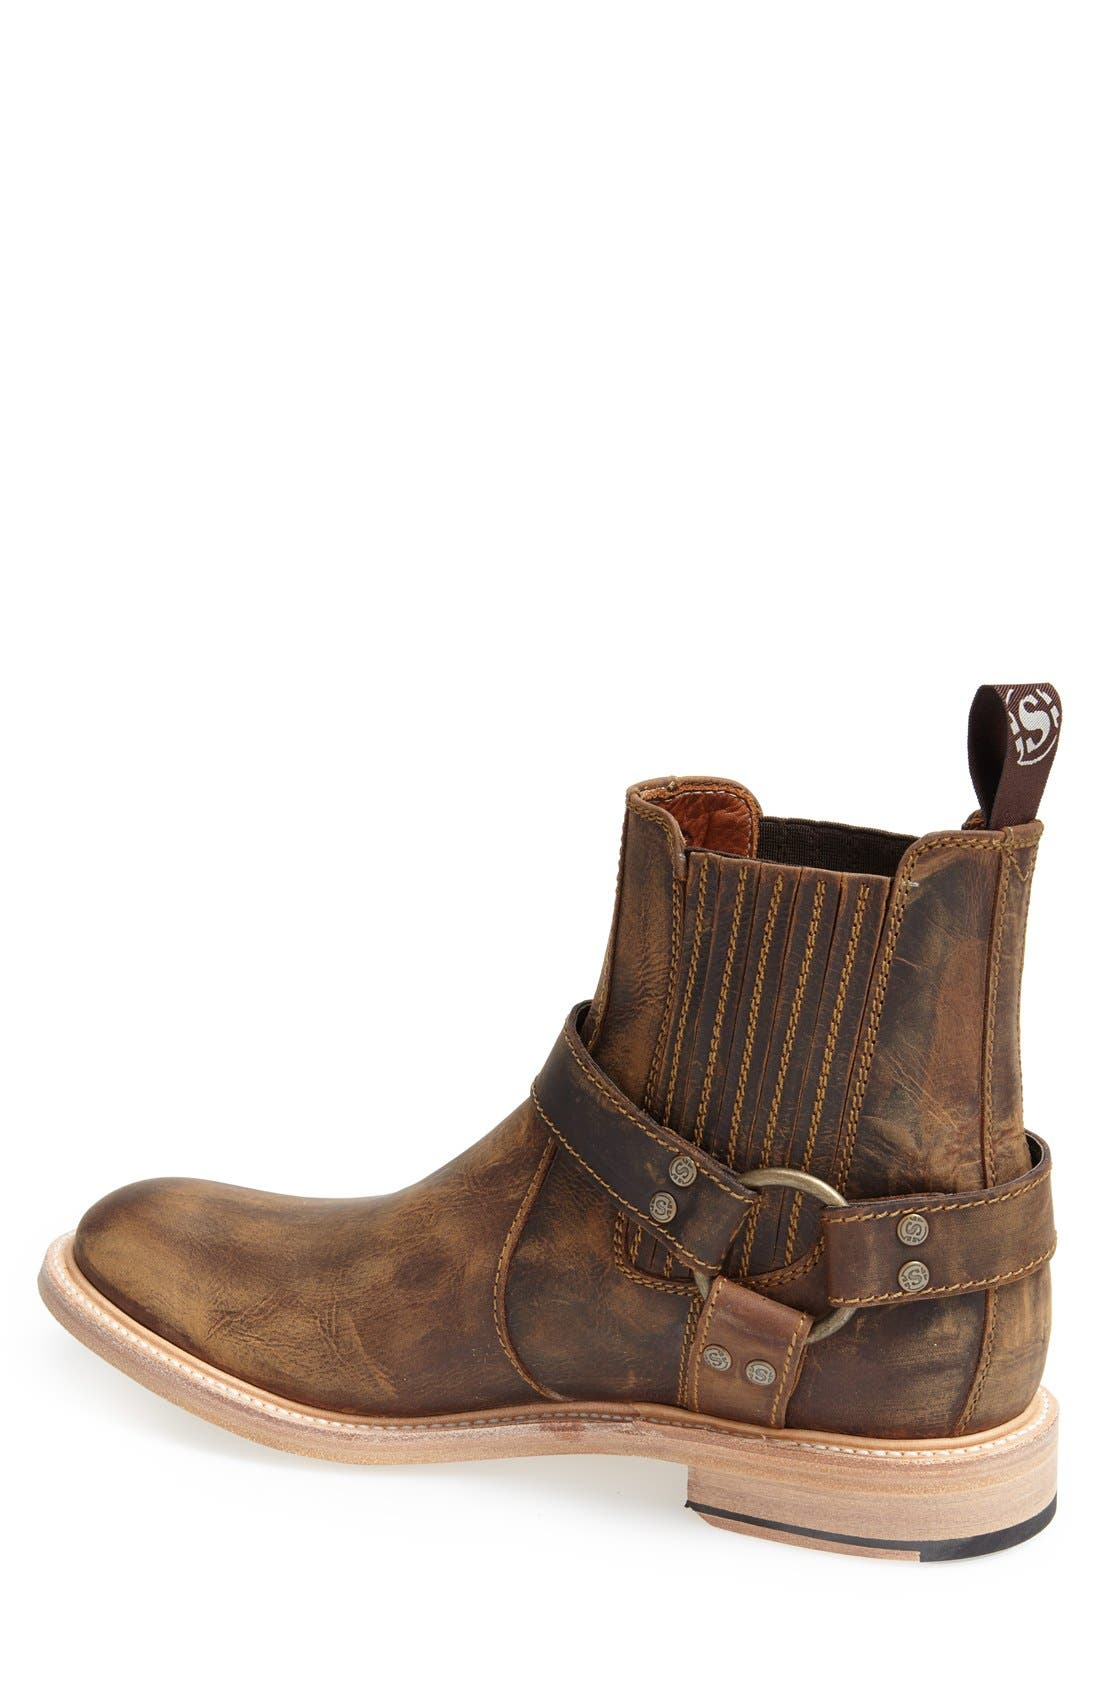 Boots 'Blake' Harness Boot,                             Alternate thumbnail 4, color,                             243